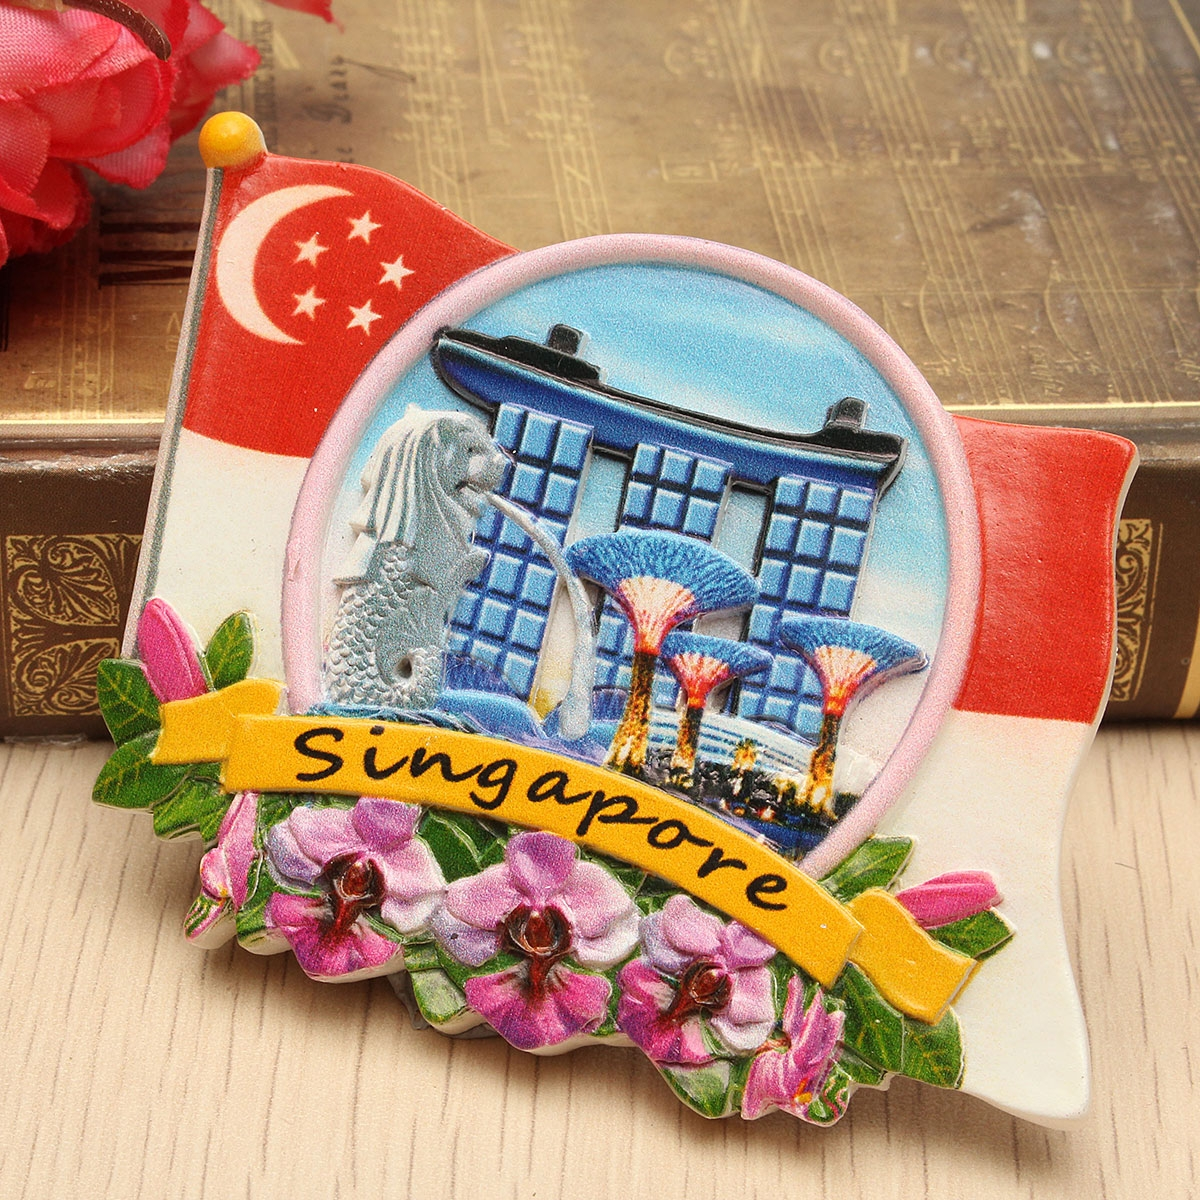 Tourist Souvenir Favorite Travel Resin 3D Fridge Magnet Colorful-Singapore